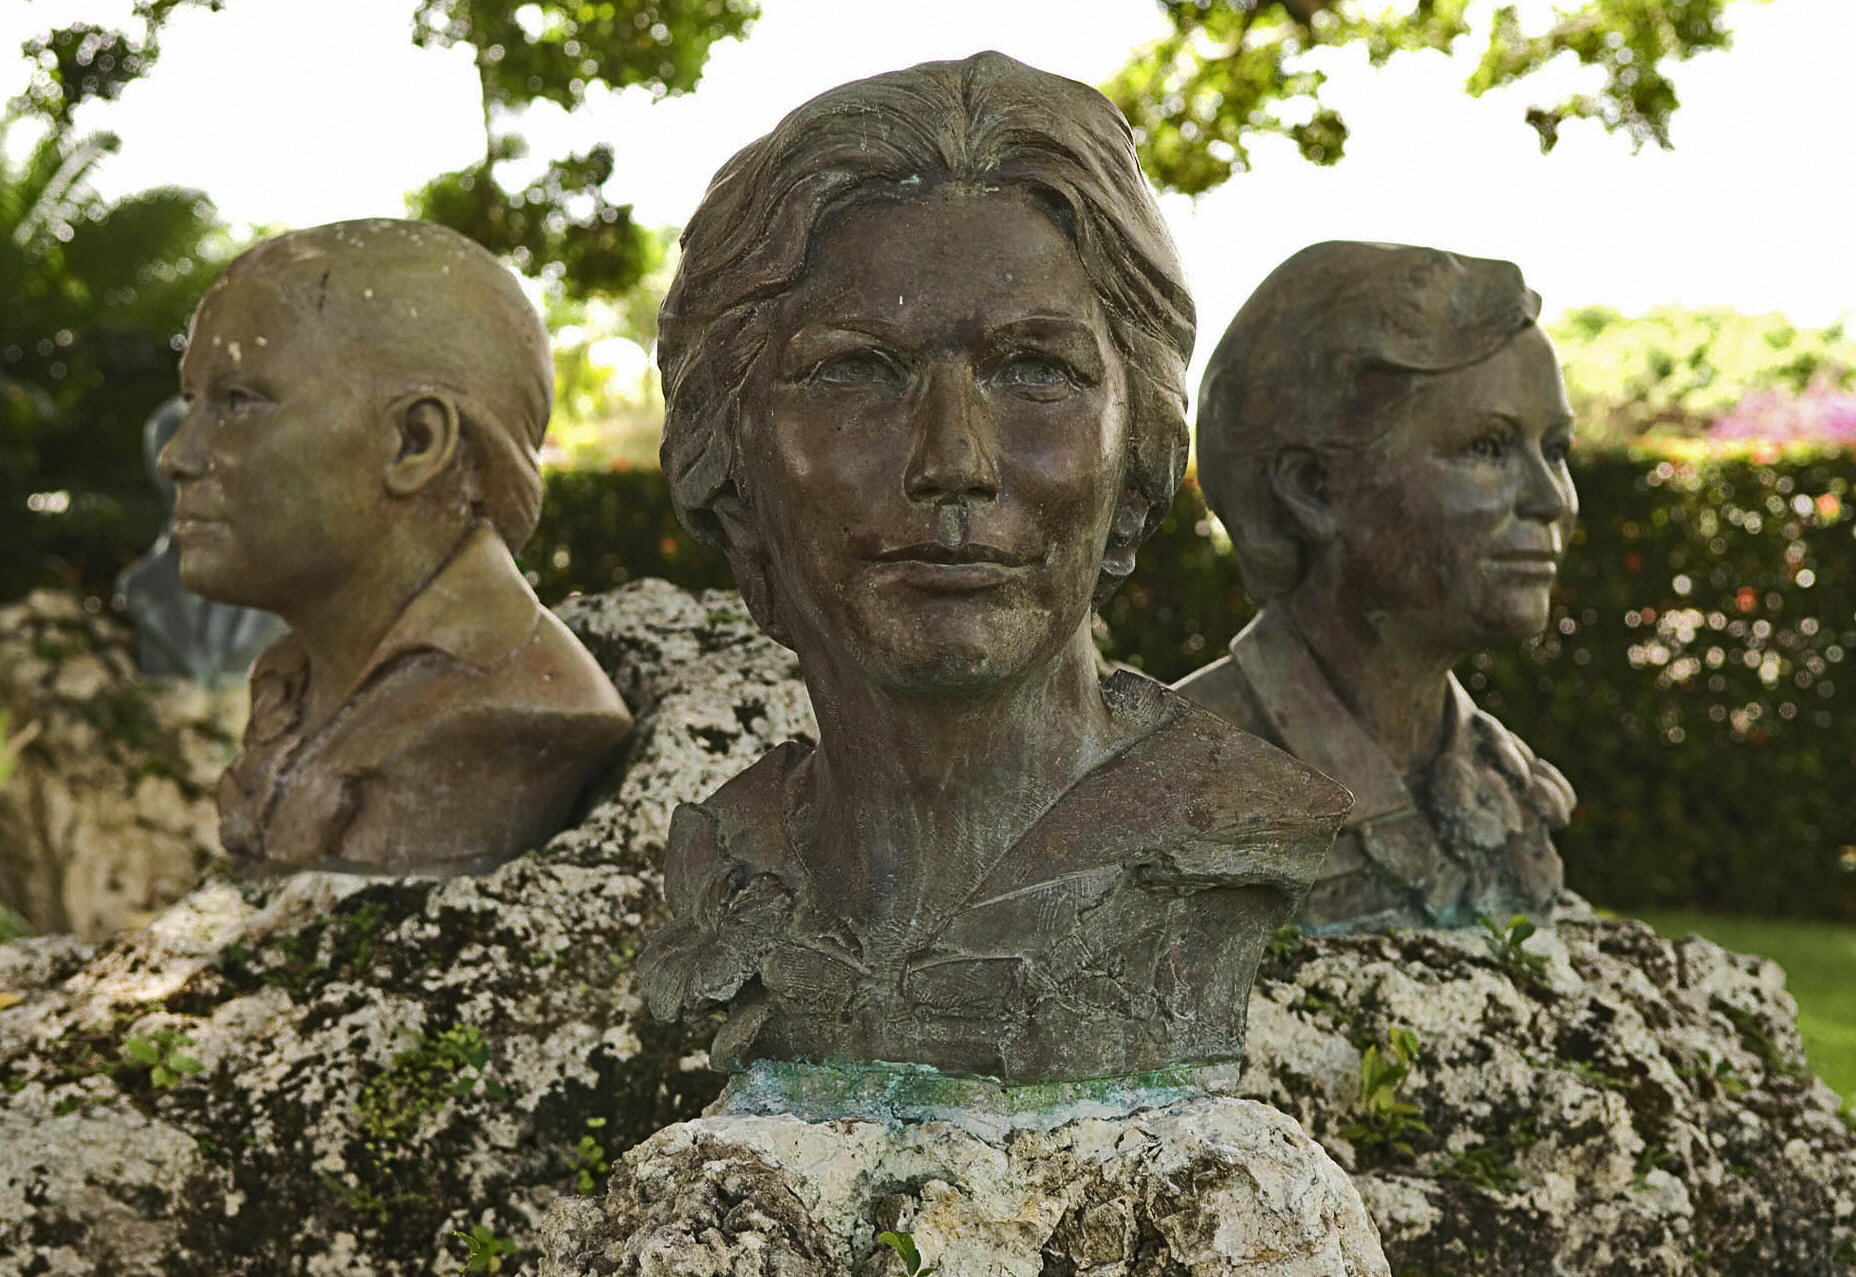 Busts of the Mirabal sisters at the muse